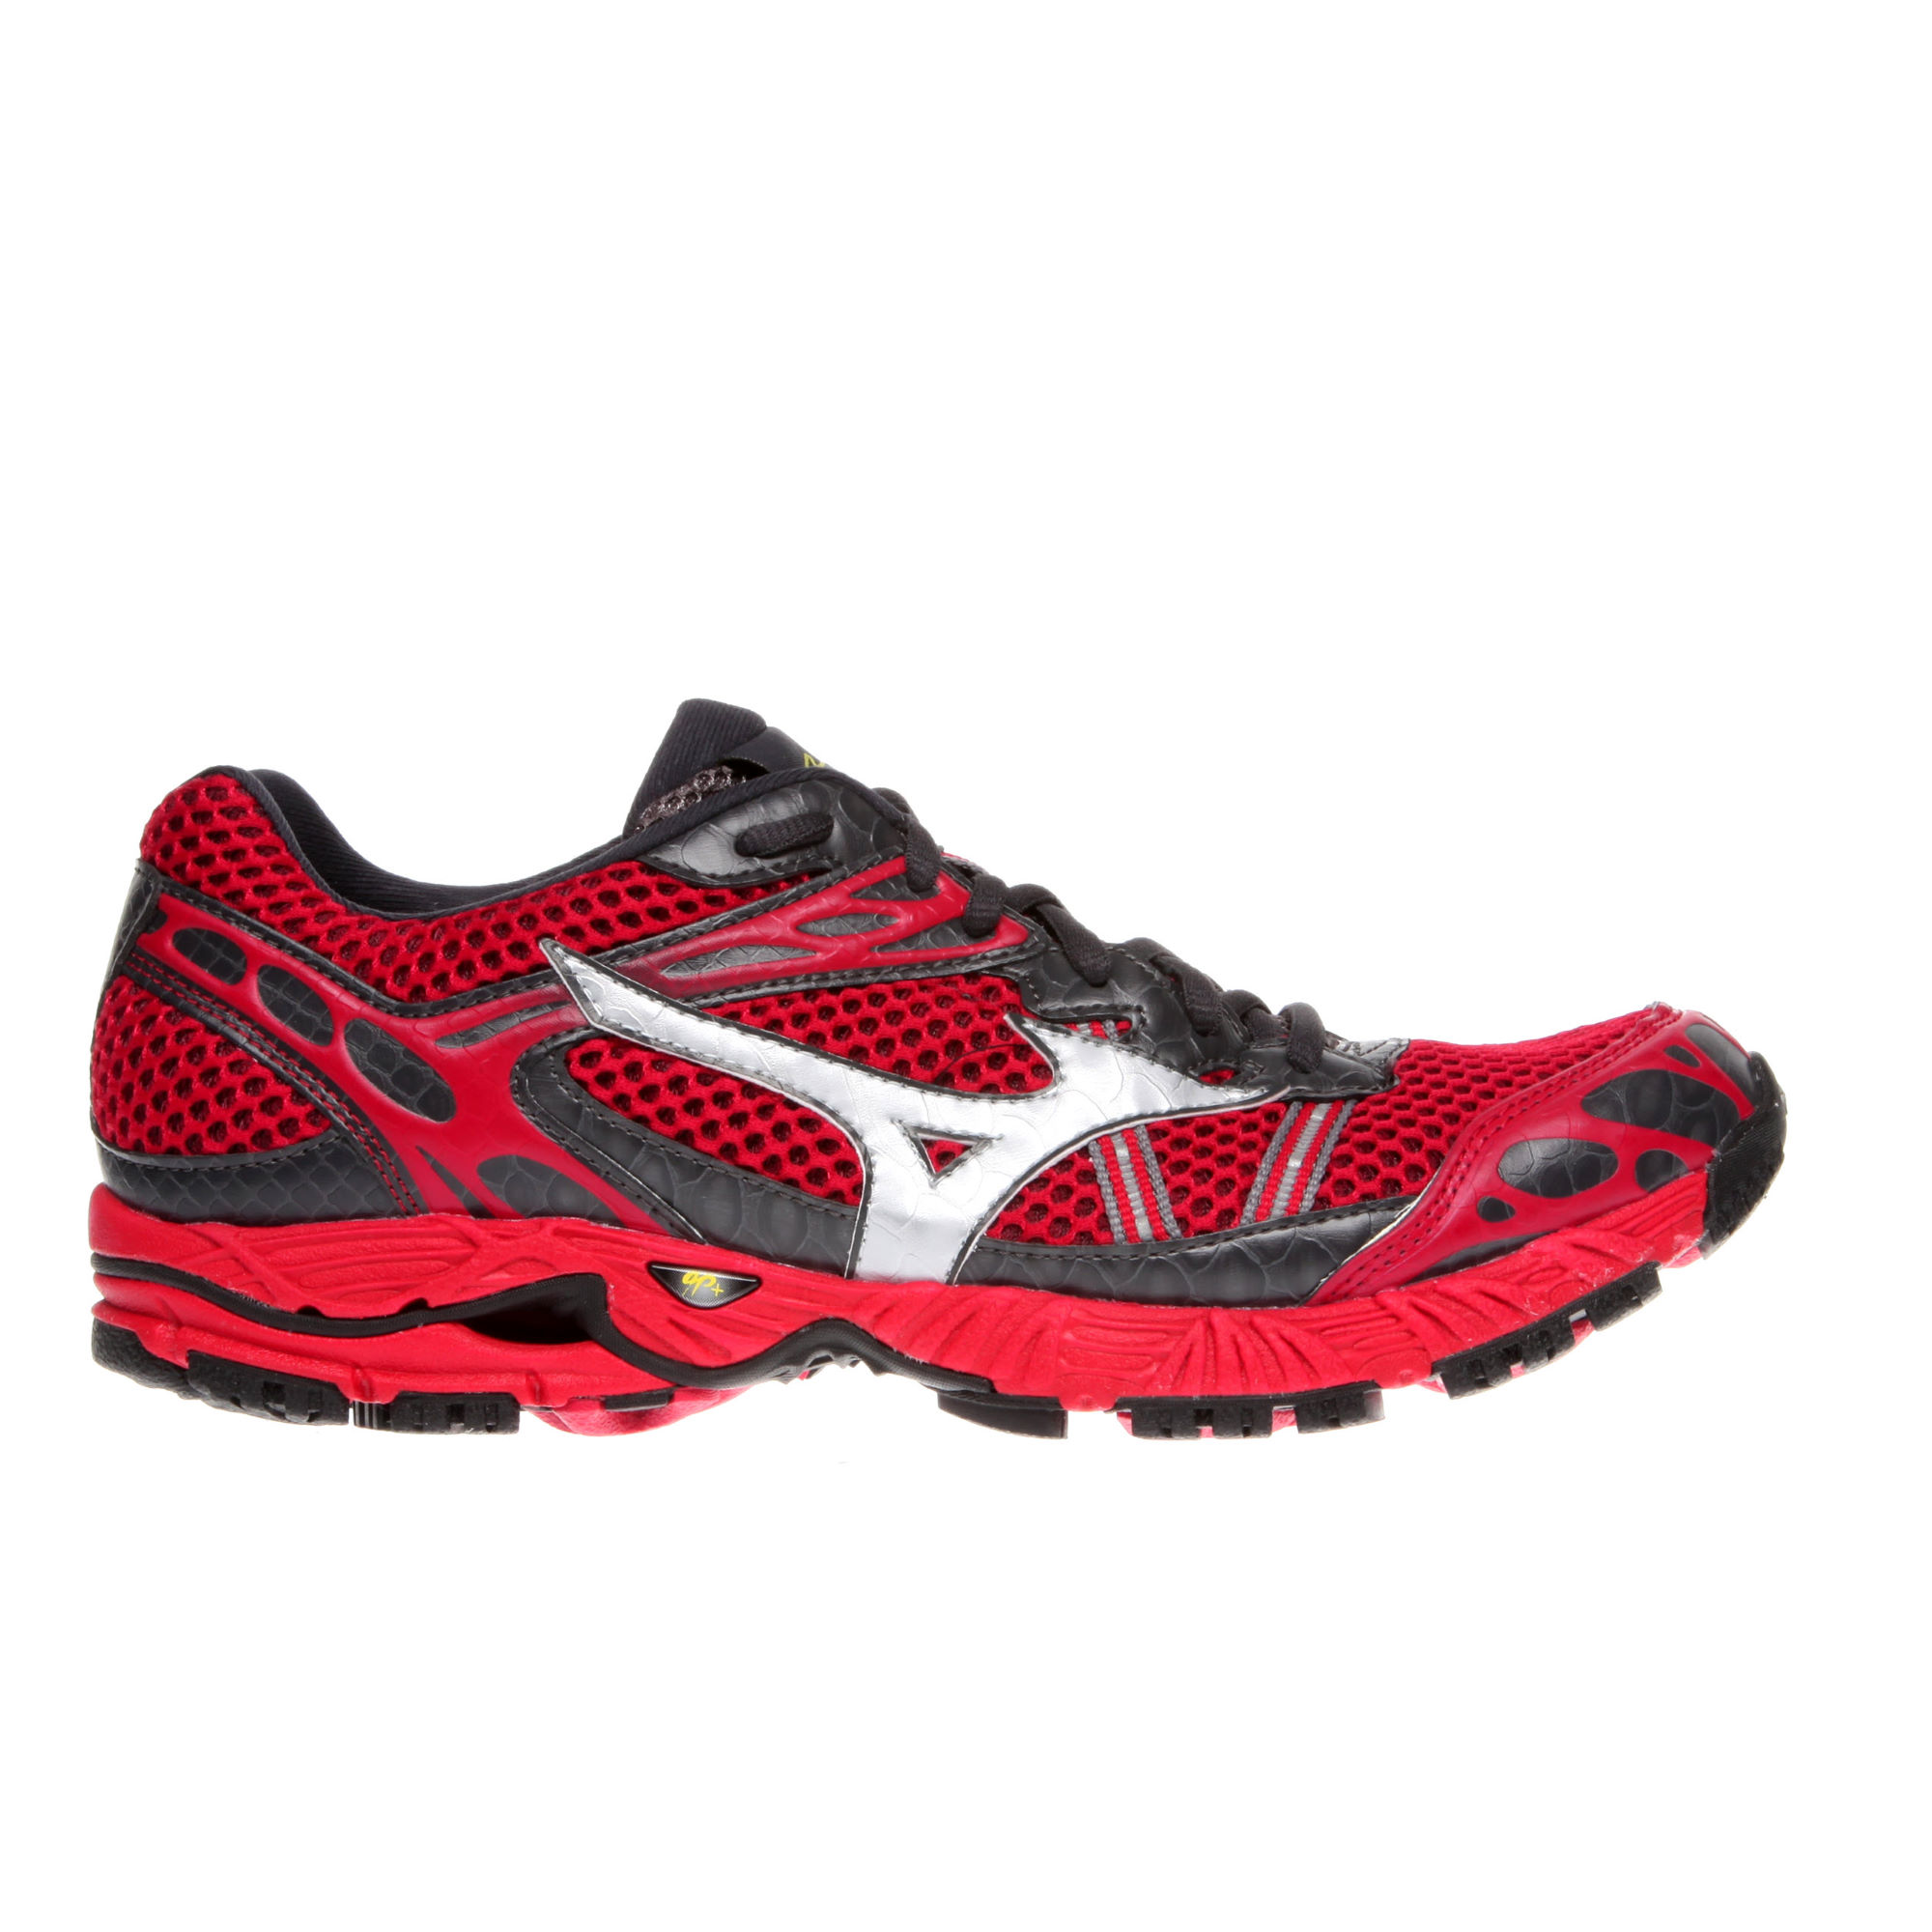 Wiggle | Mizuno Wave Ascend 7 Shoes AW12 | Offroad Running